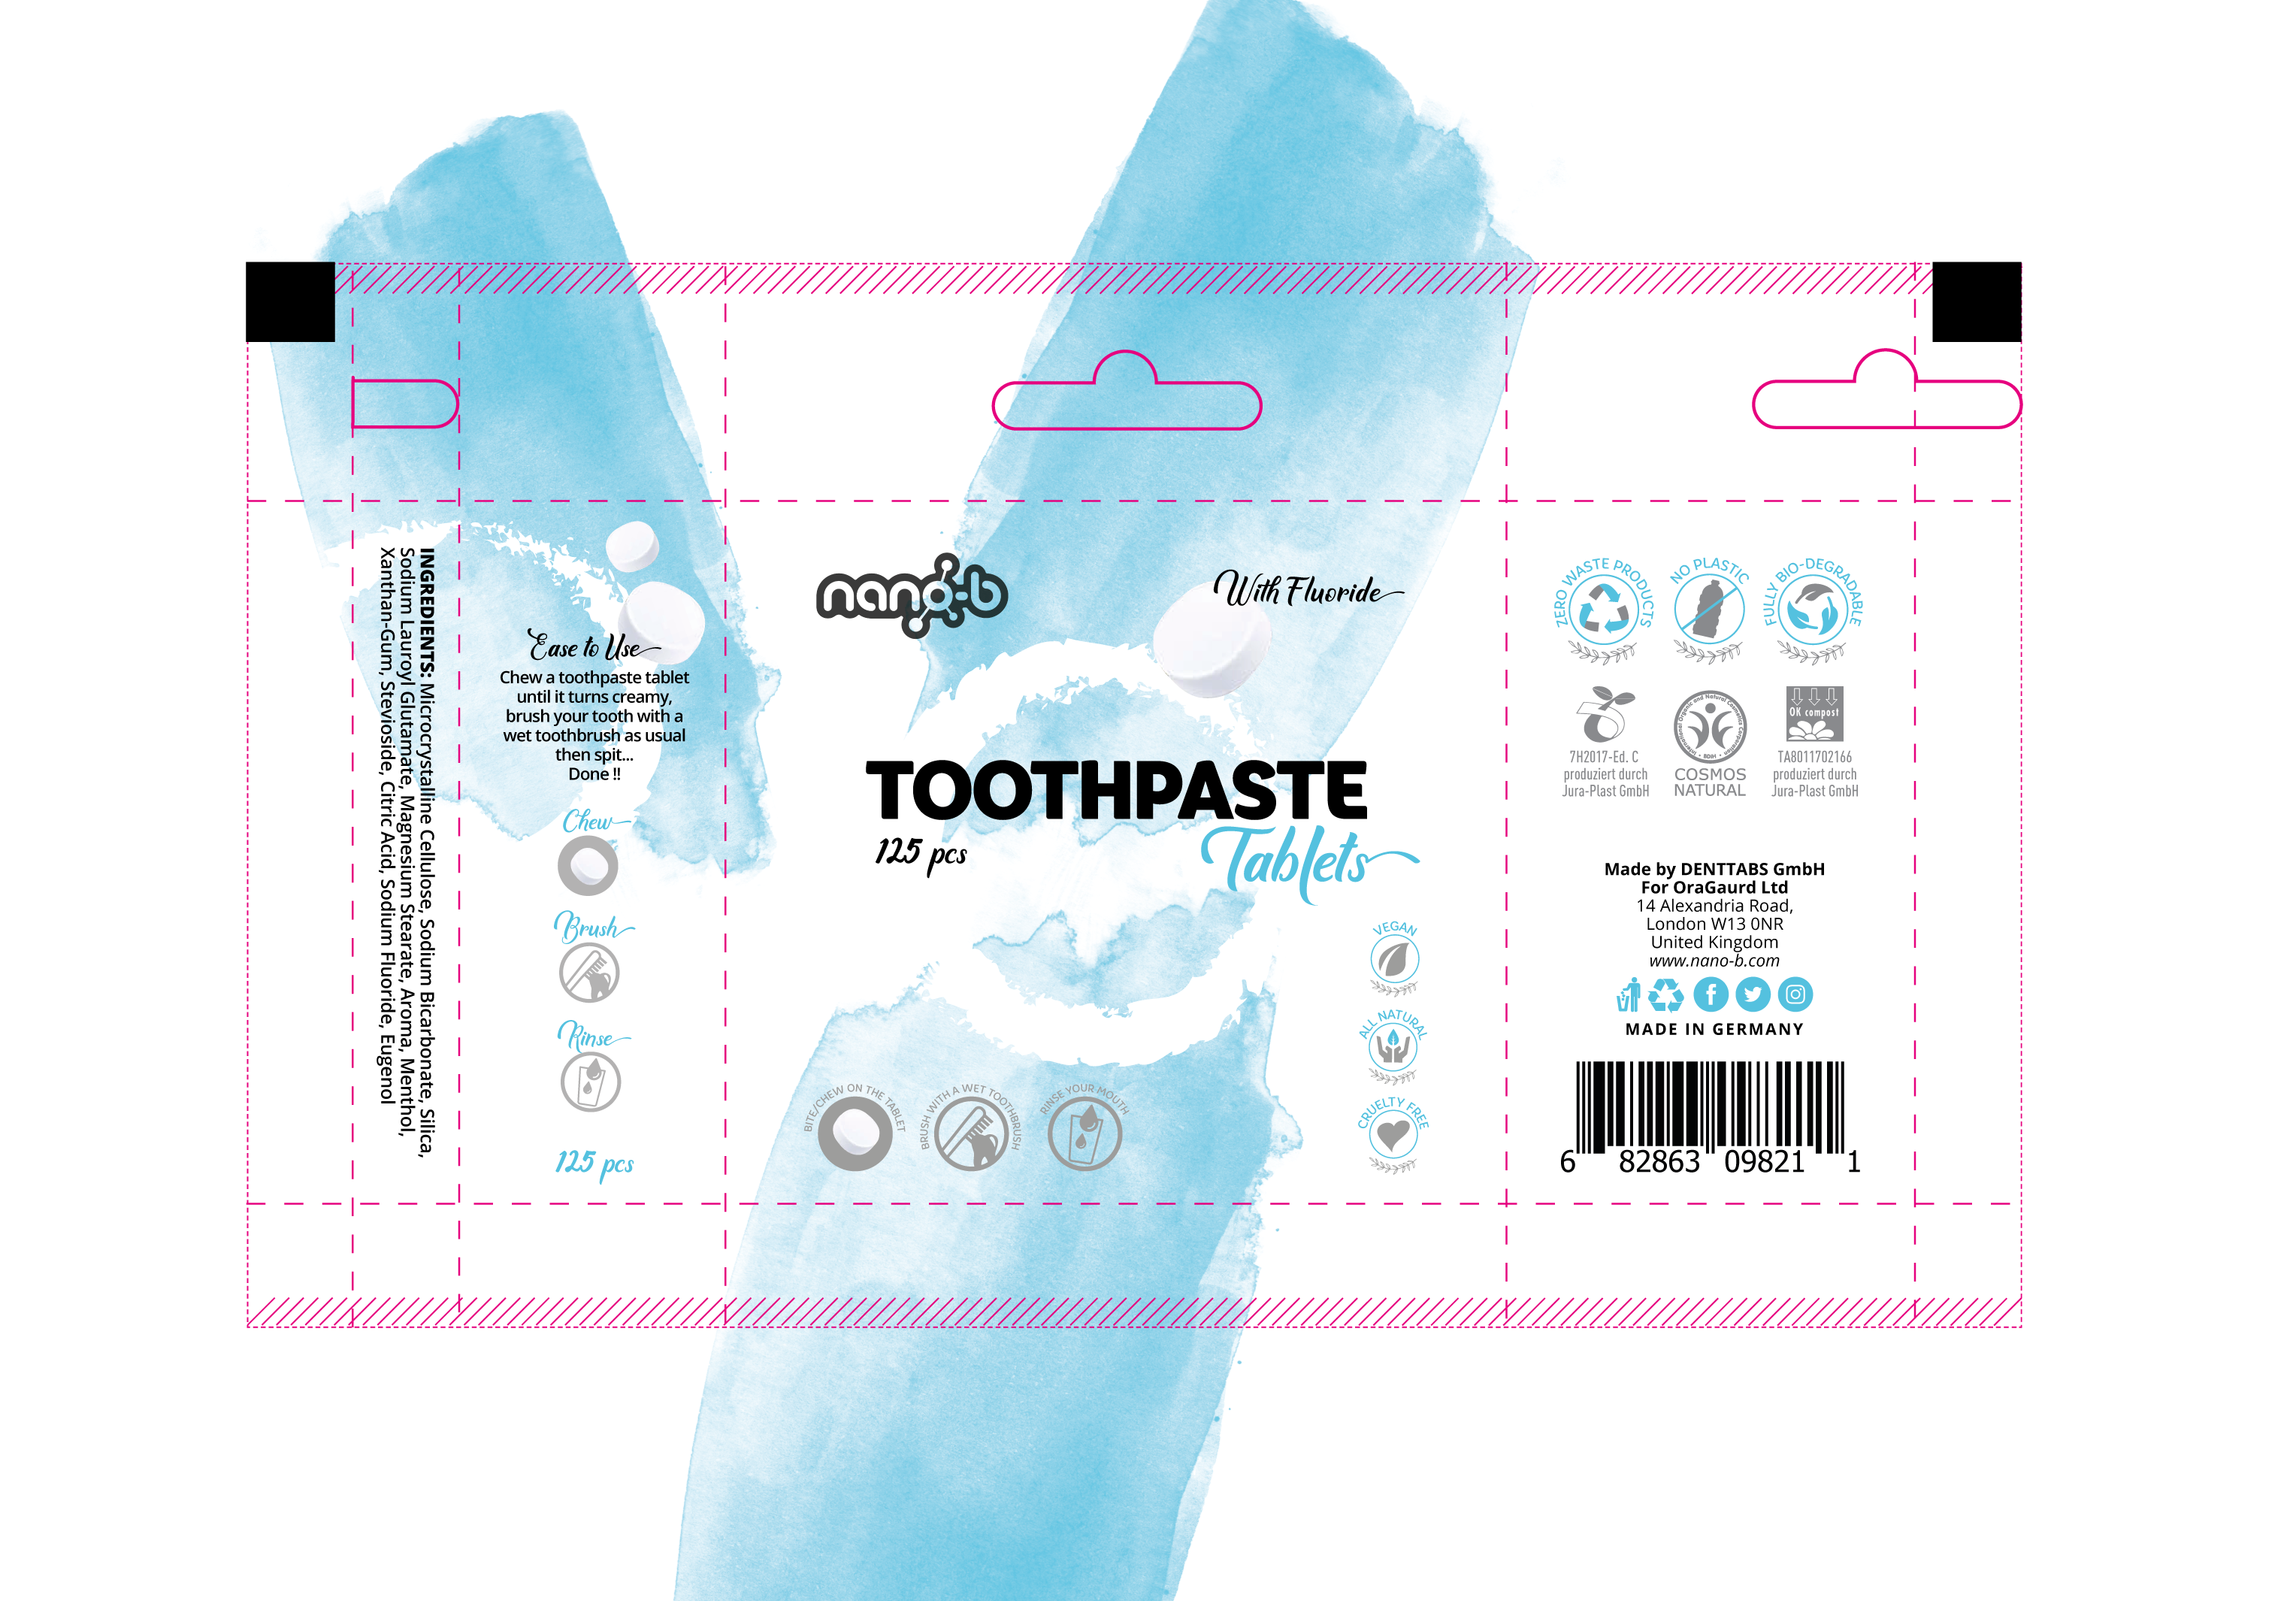 Eye-catching label design for an innovative toothpaste tablets product.